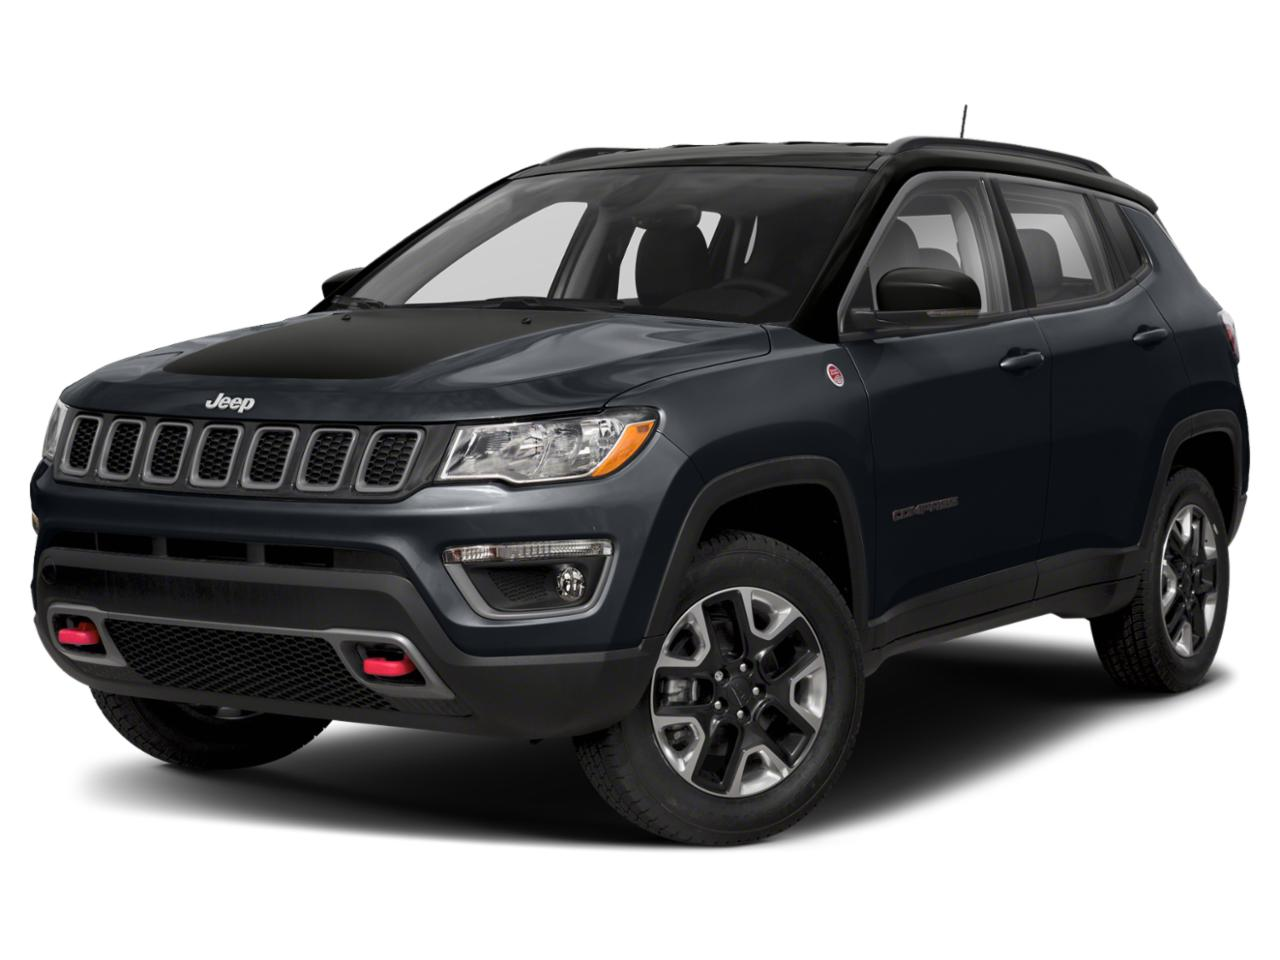 2018 Jeep Compass Vehicle Photo in Glenwood Springs, CO 81601